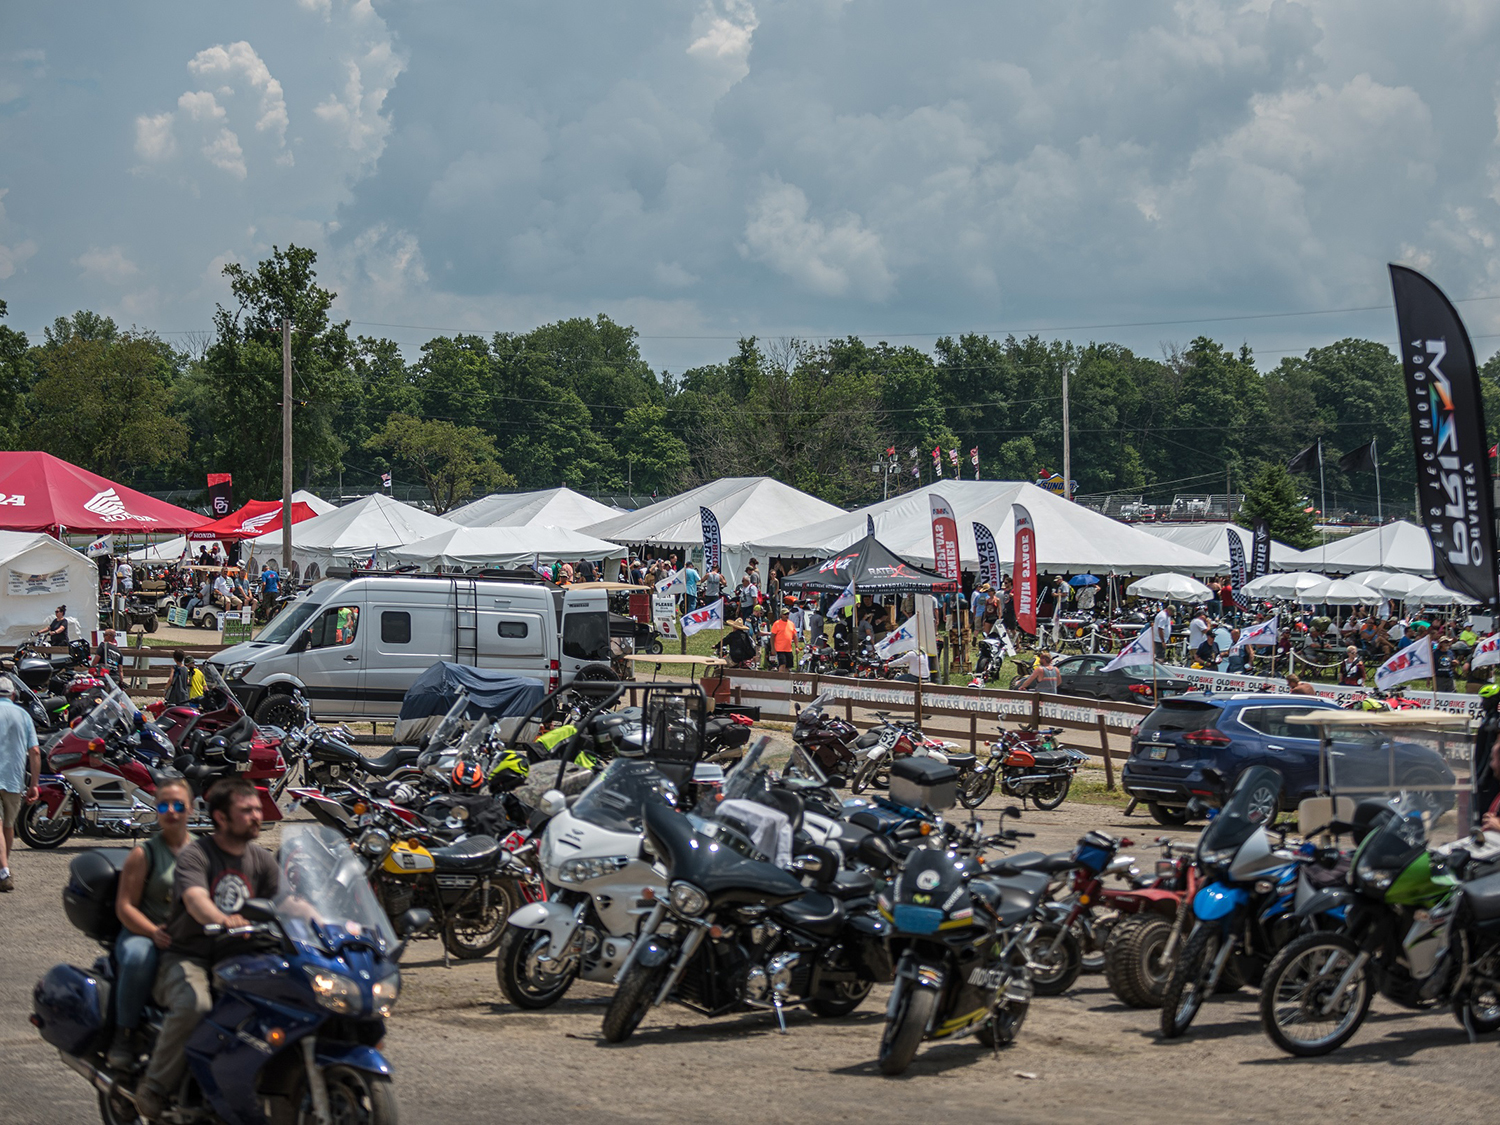 Fans at the 2019 AMA Vintage Motorcycle Days.